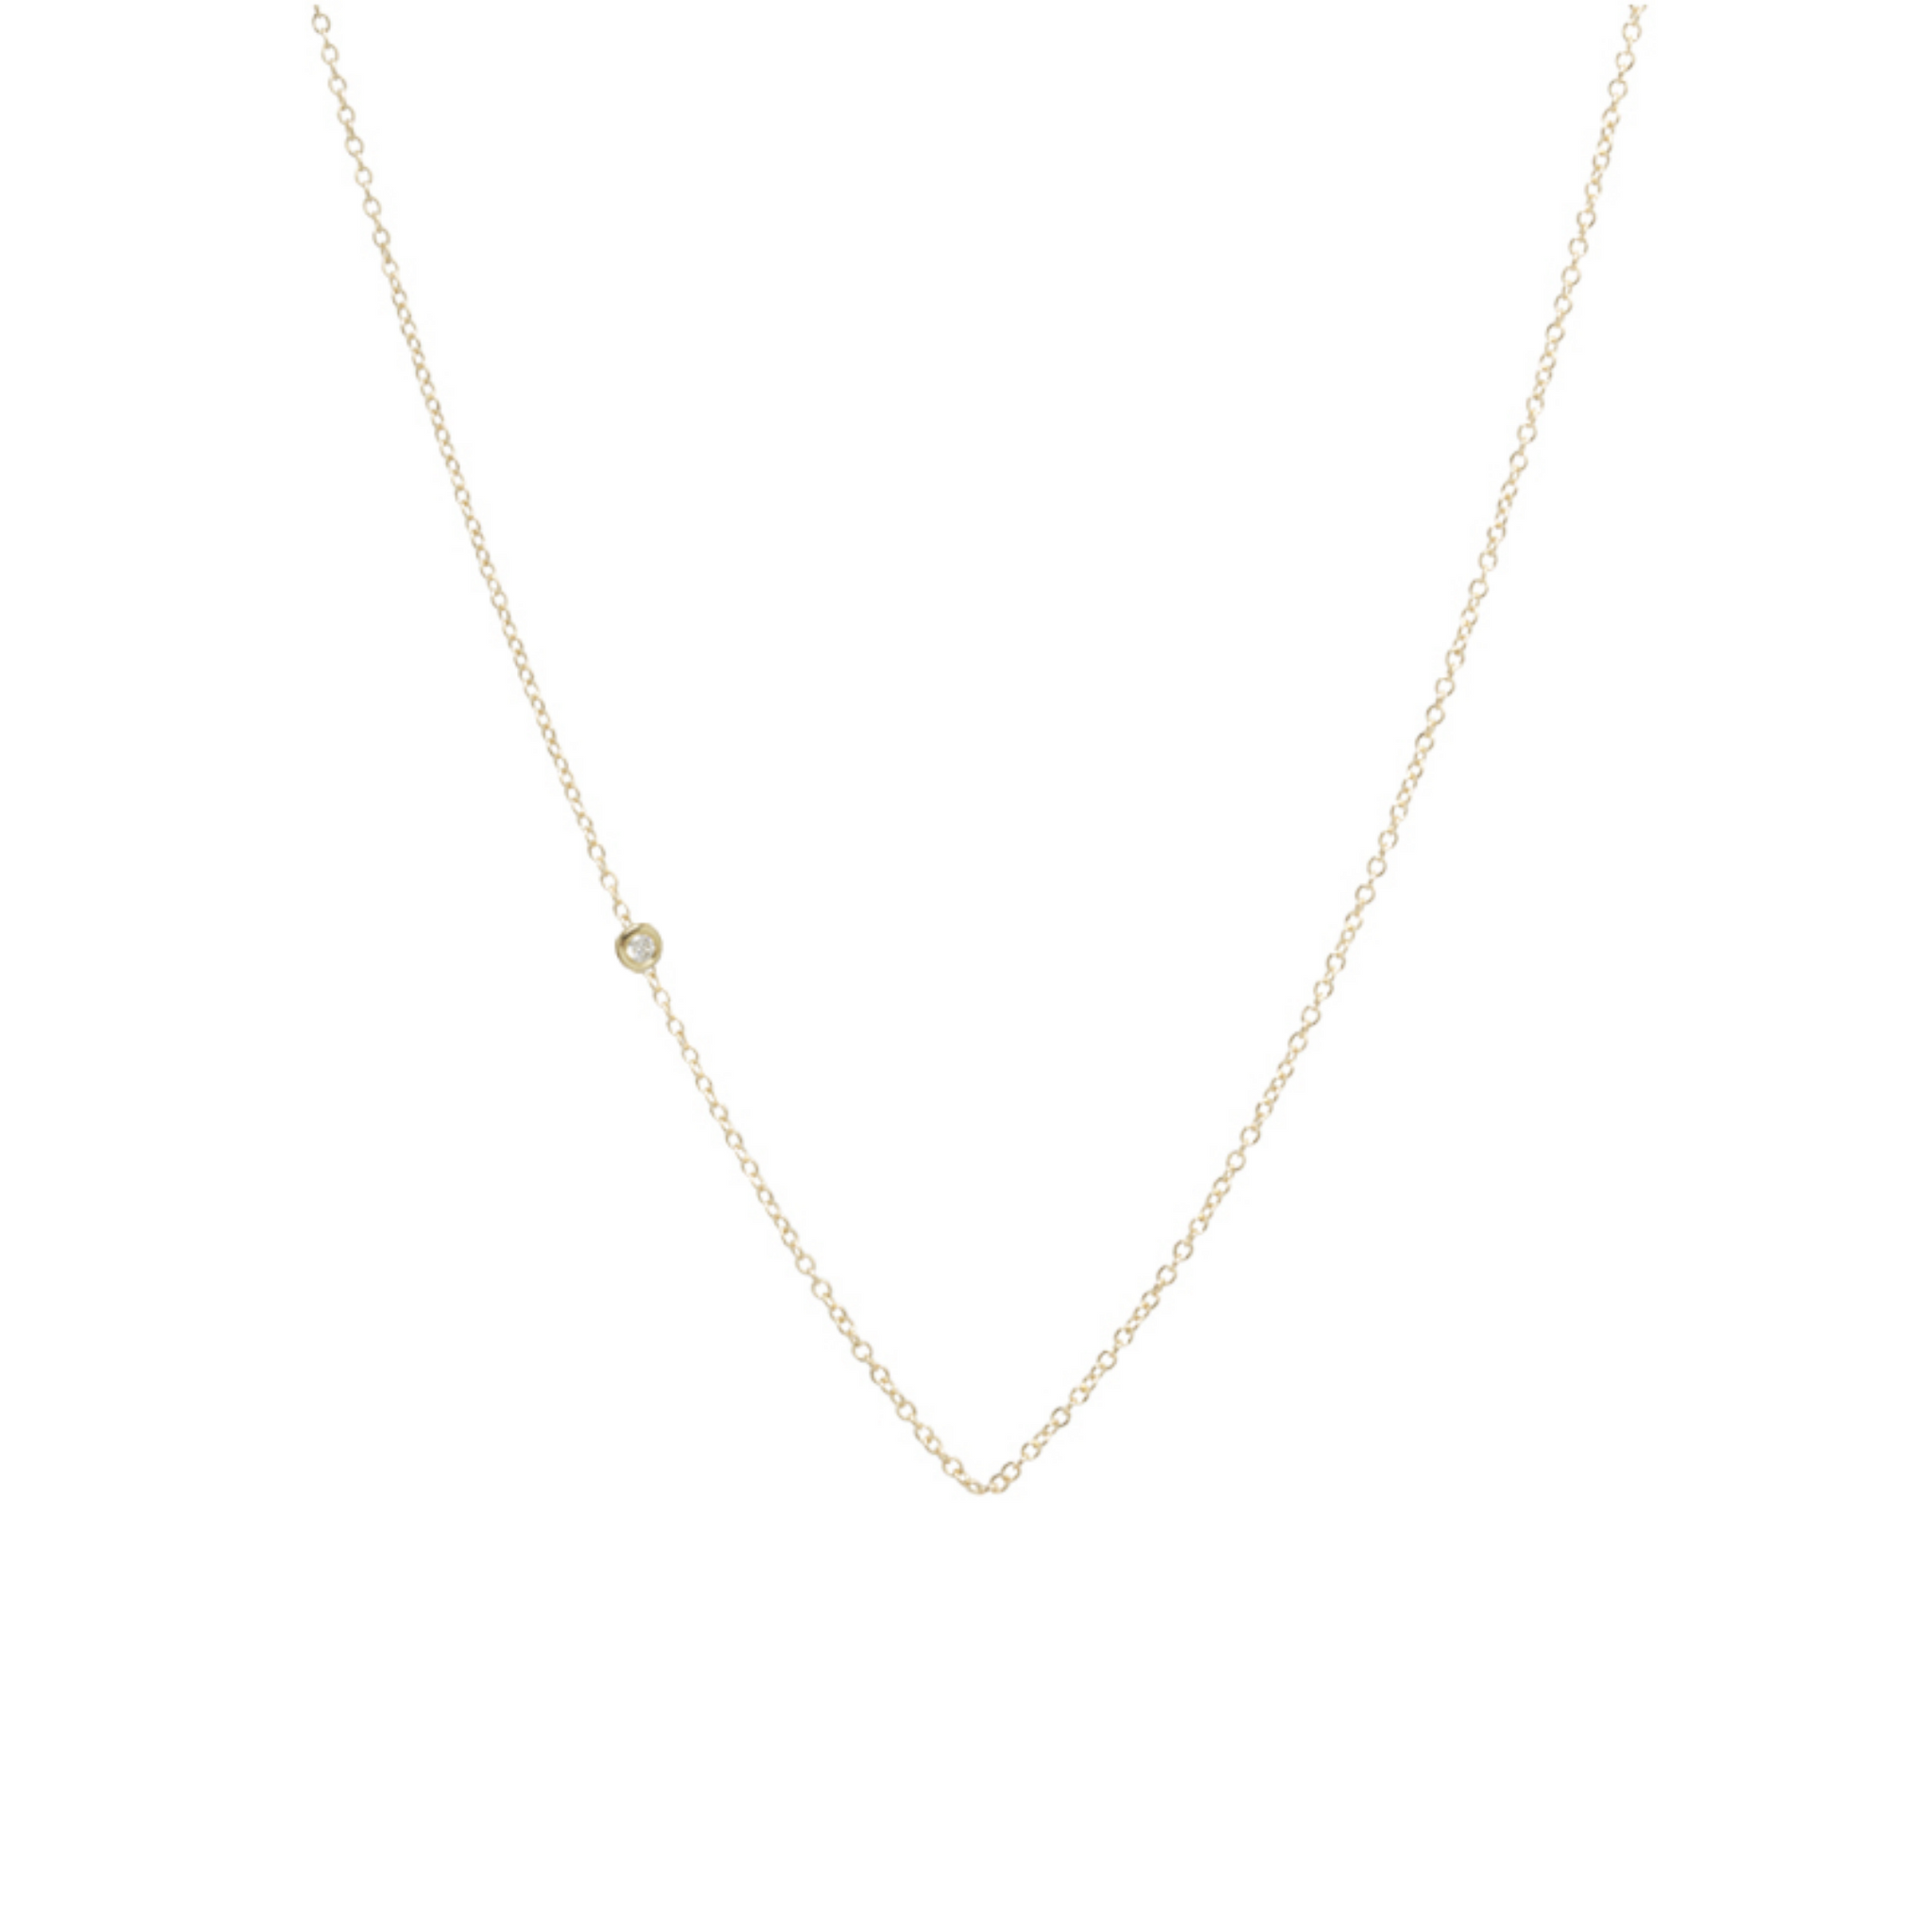 14K Yellow Gold Floating Diamond Necklace